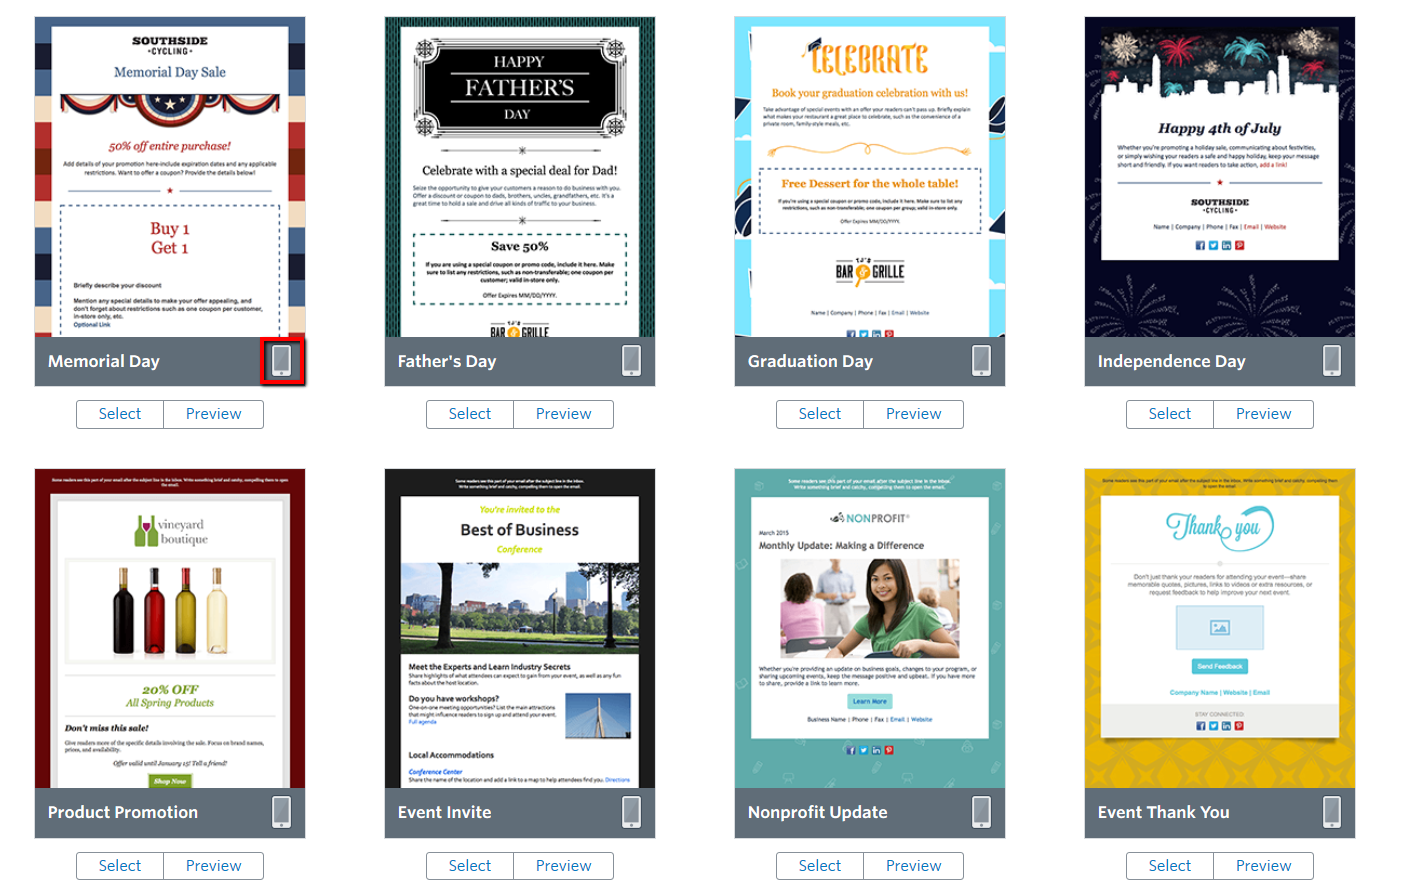 How To Find Mobile Friendly Templates Constant Contact Community